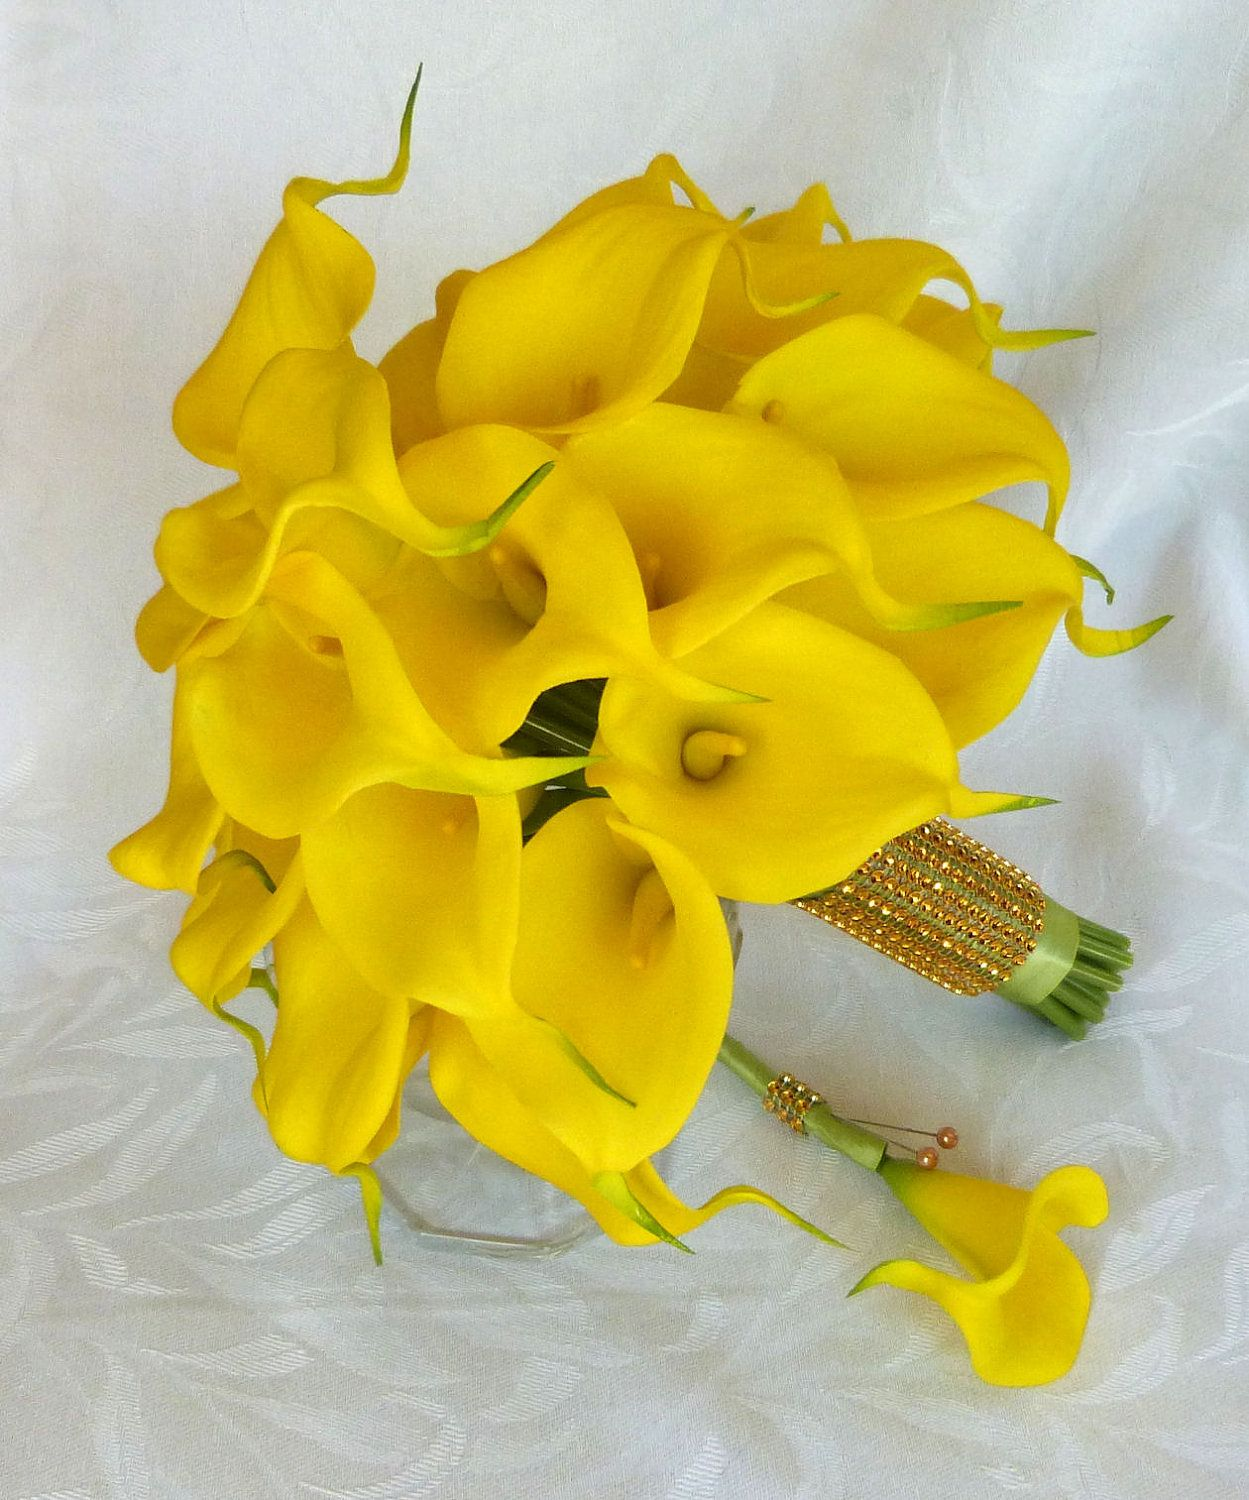 Yellow Mini Calla Lilies are a stunning choice for the DIY bride! They come in a variety of colors and are available year-round at GrowersBox.com.